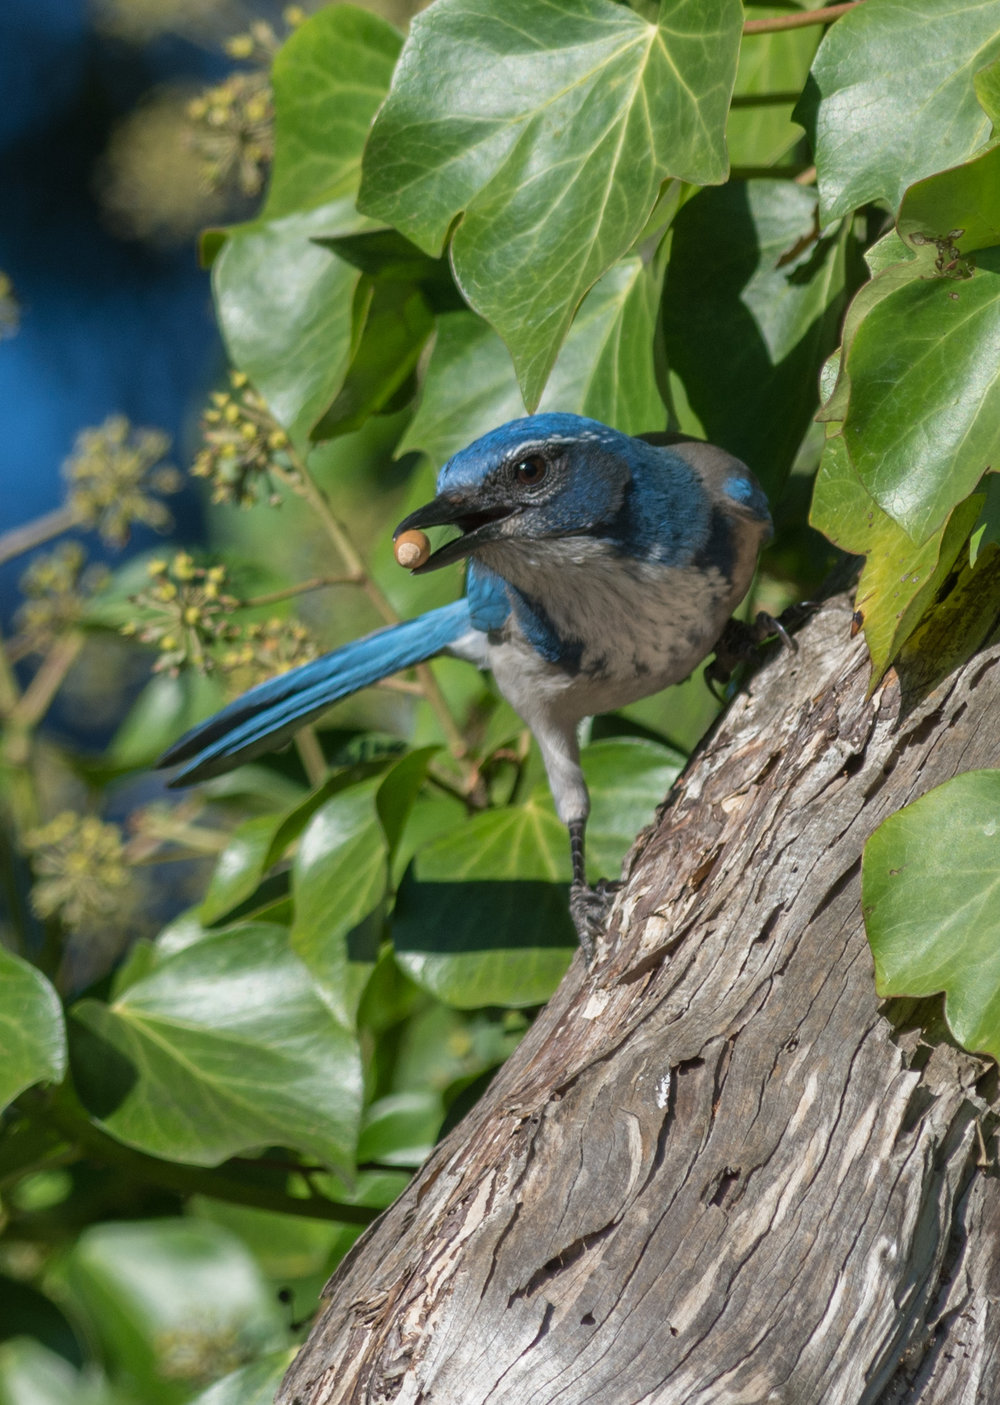 California Scrub Jay (Aphelocoma californica) - Arana Gulch, SCZ (CA)  EQ: D7200, 300mm f/2.8   Taken: 11-12-2015 at 9:47   Settings: 450 mm (35mm eqiv), 1/640s, f/5.0, ISO250, +1/3EV         Conditions: Sunny/shade